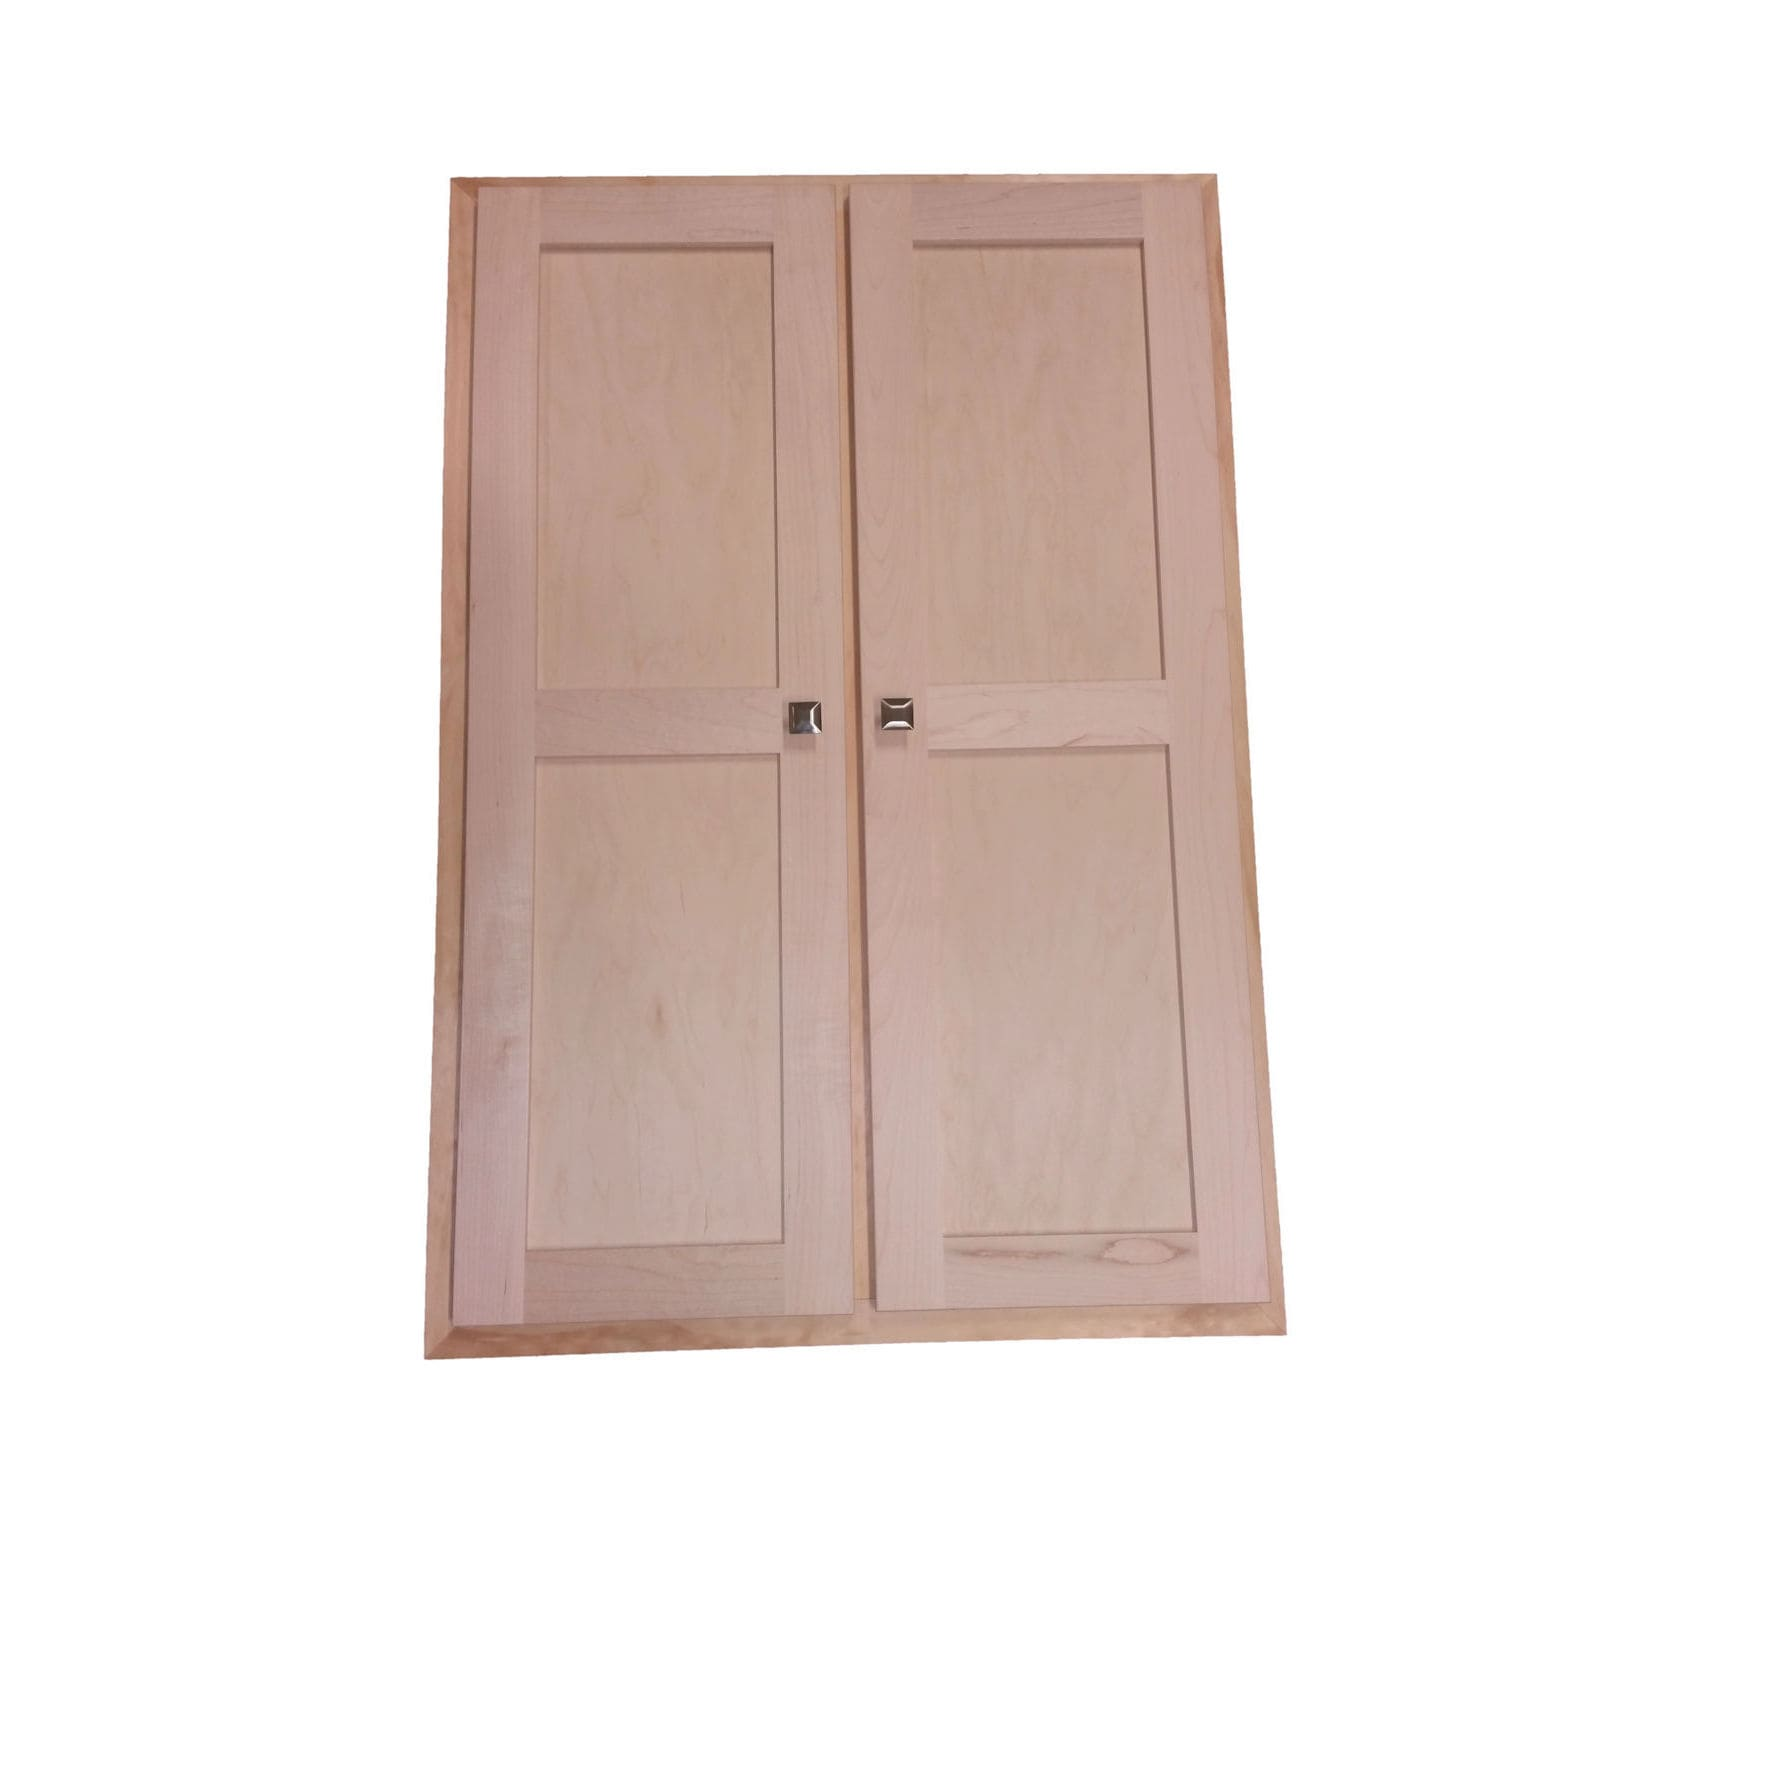 Wg Wood Products Unfinished Wood 42 Inch Recessed Craftsman Double Door Storage Ebay